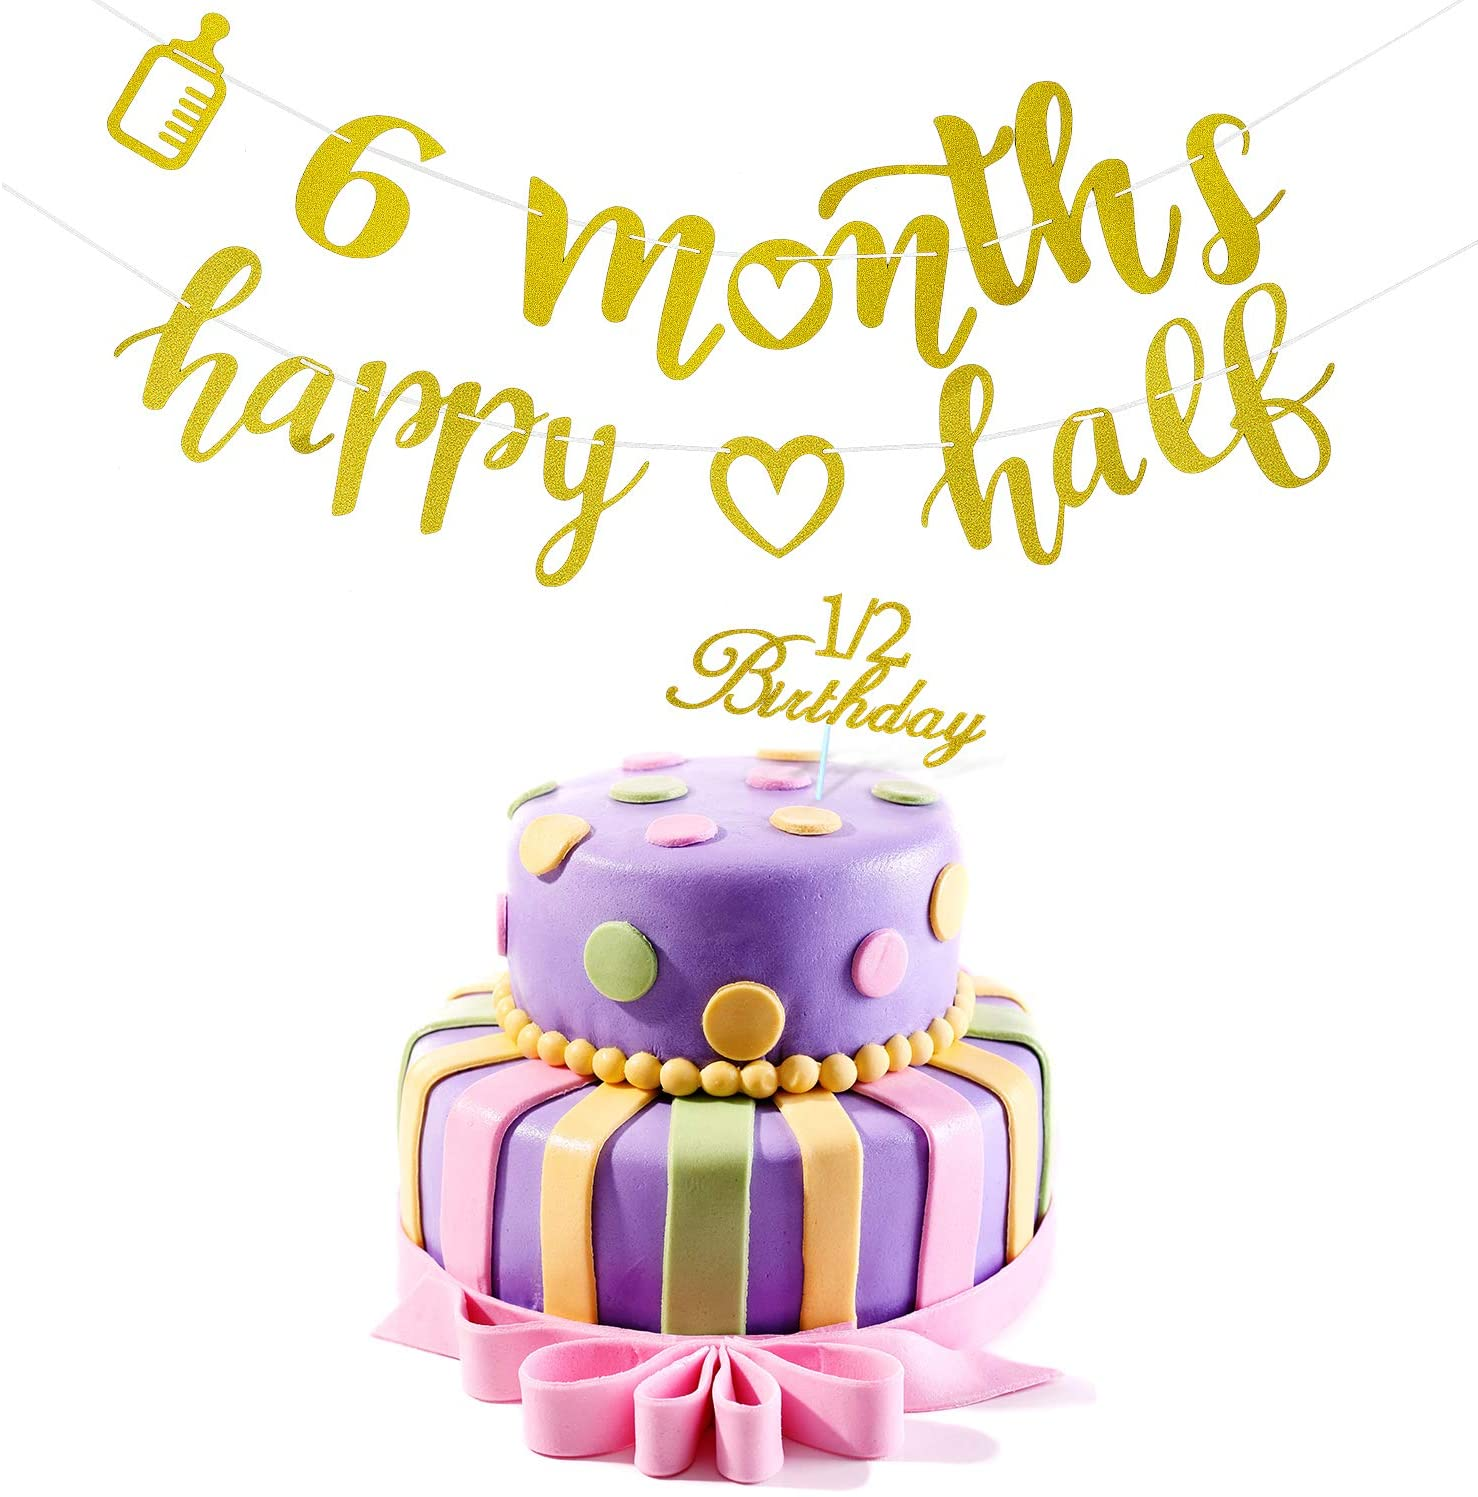 2 Pieces 6 Months Banner Decoration Happy Half Garland and Glitter Cupcake Topper with 1/2 Birthday Design for Baby Shower Birthday Party Decorations(Not Pre-Strung)